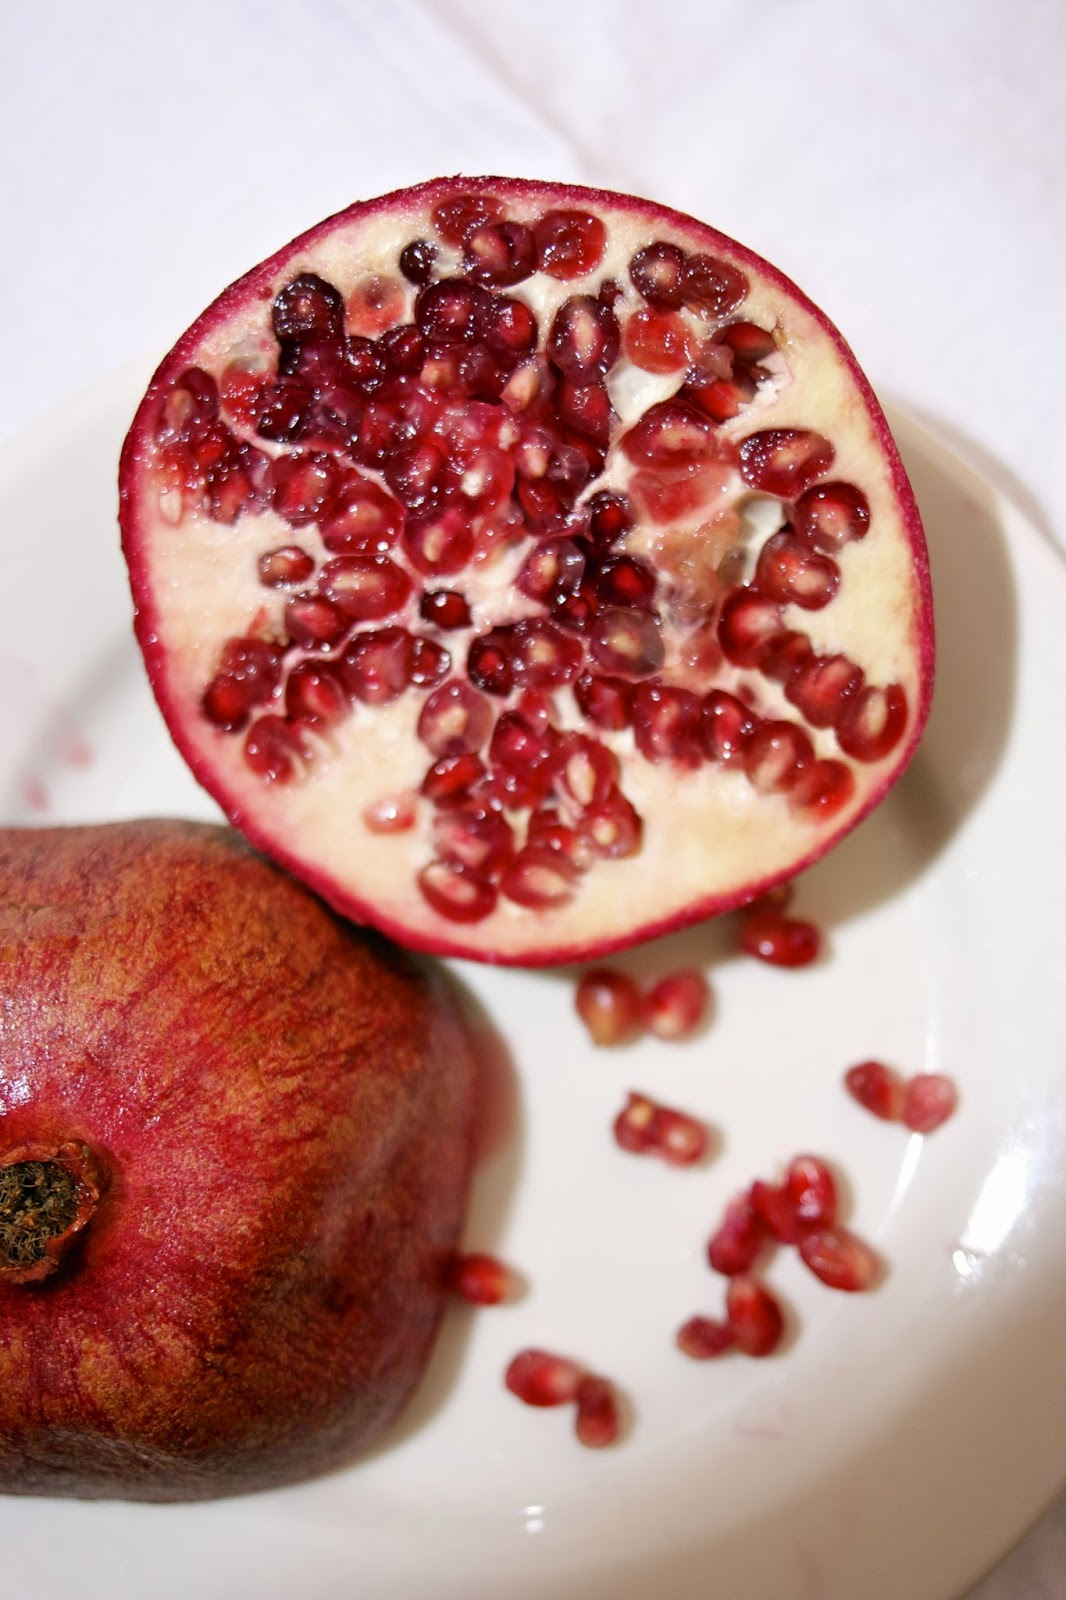 Pomegranate- simplelivingeating.com